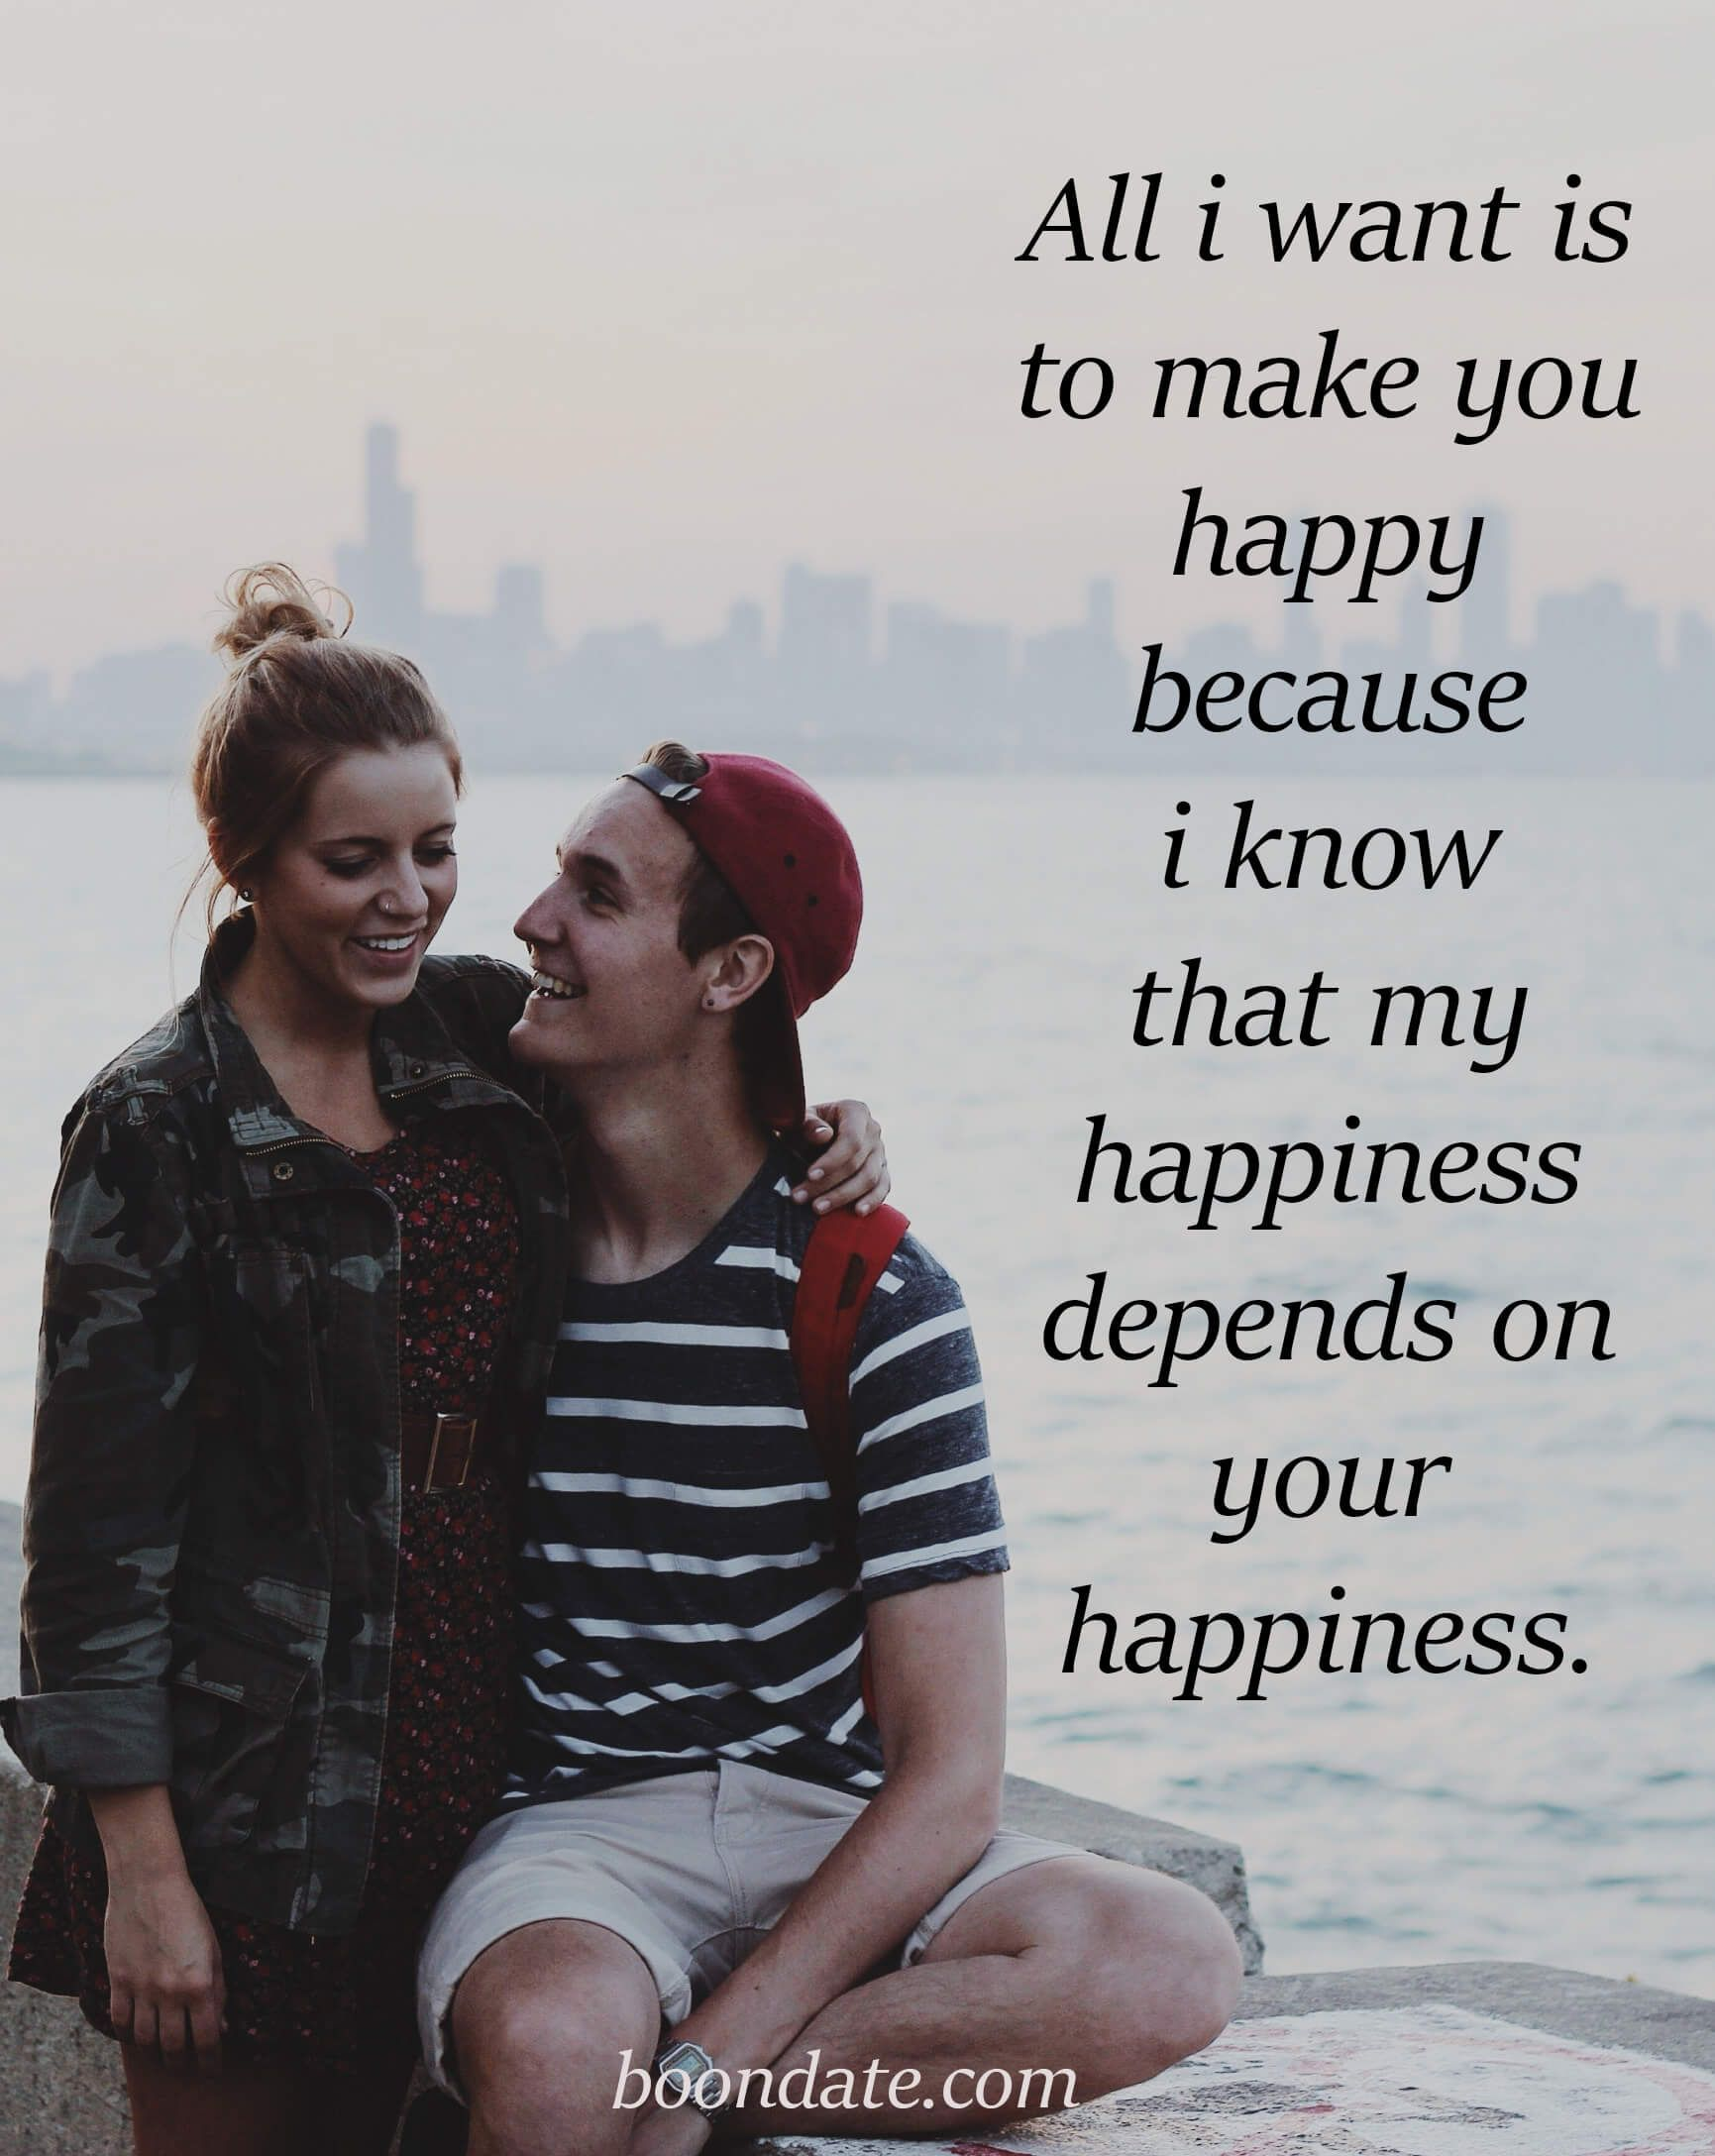 All i want is to make you happy » Love Tips on Boondate